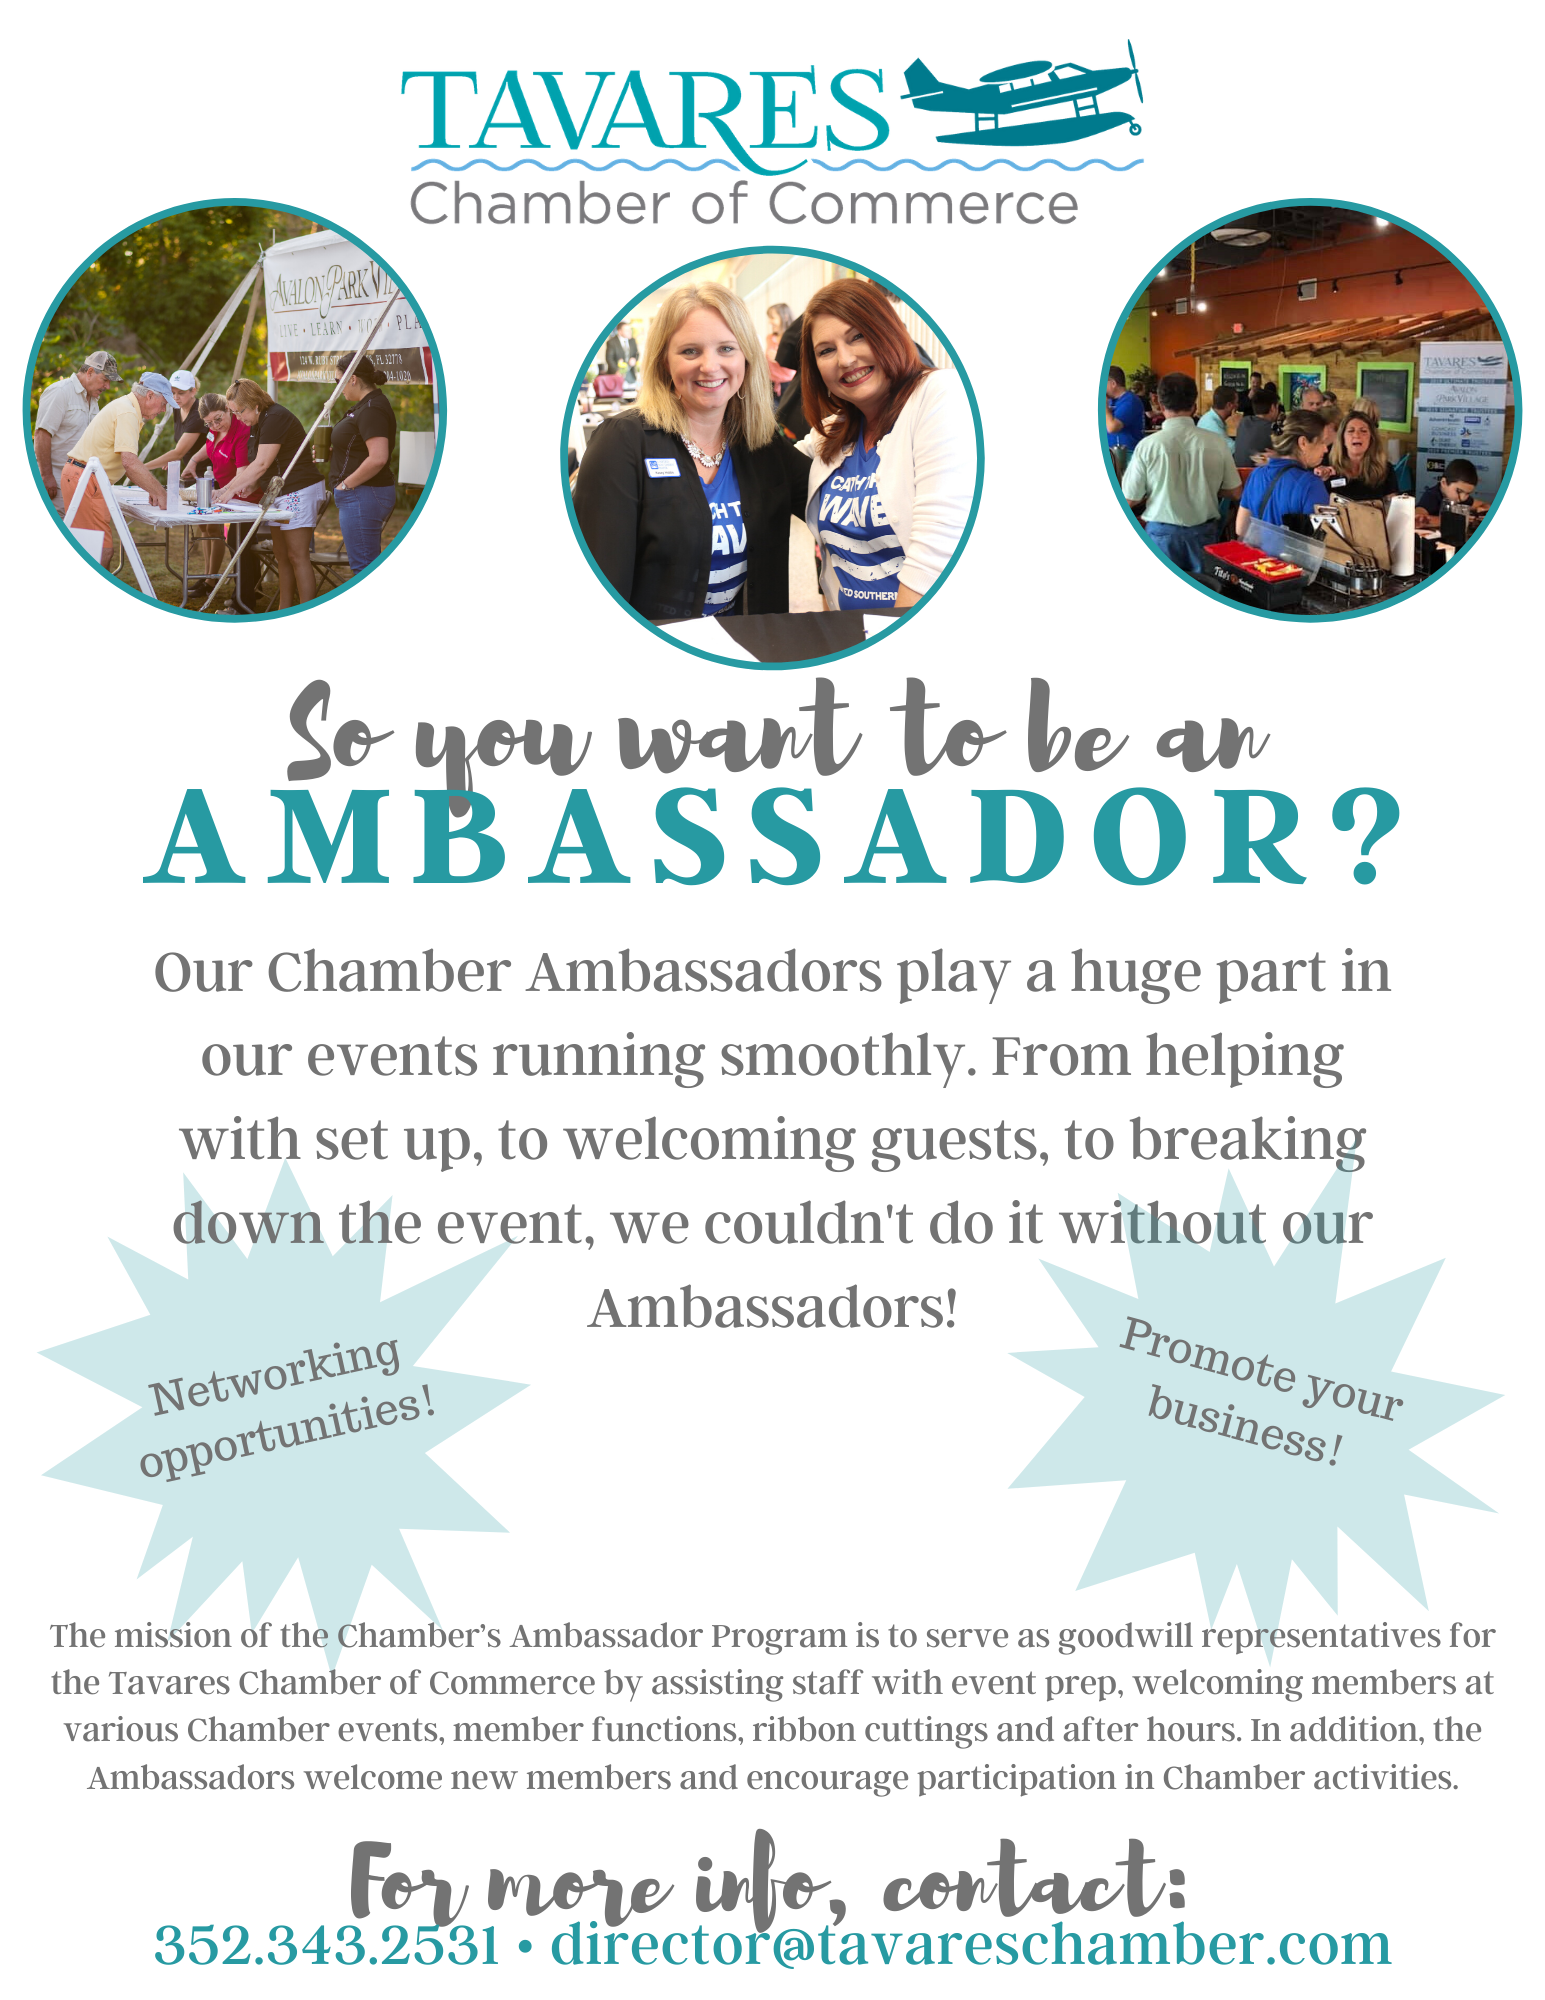 So you want to be an Ambassador?